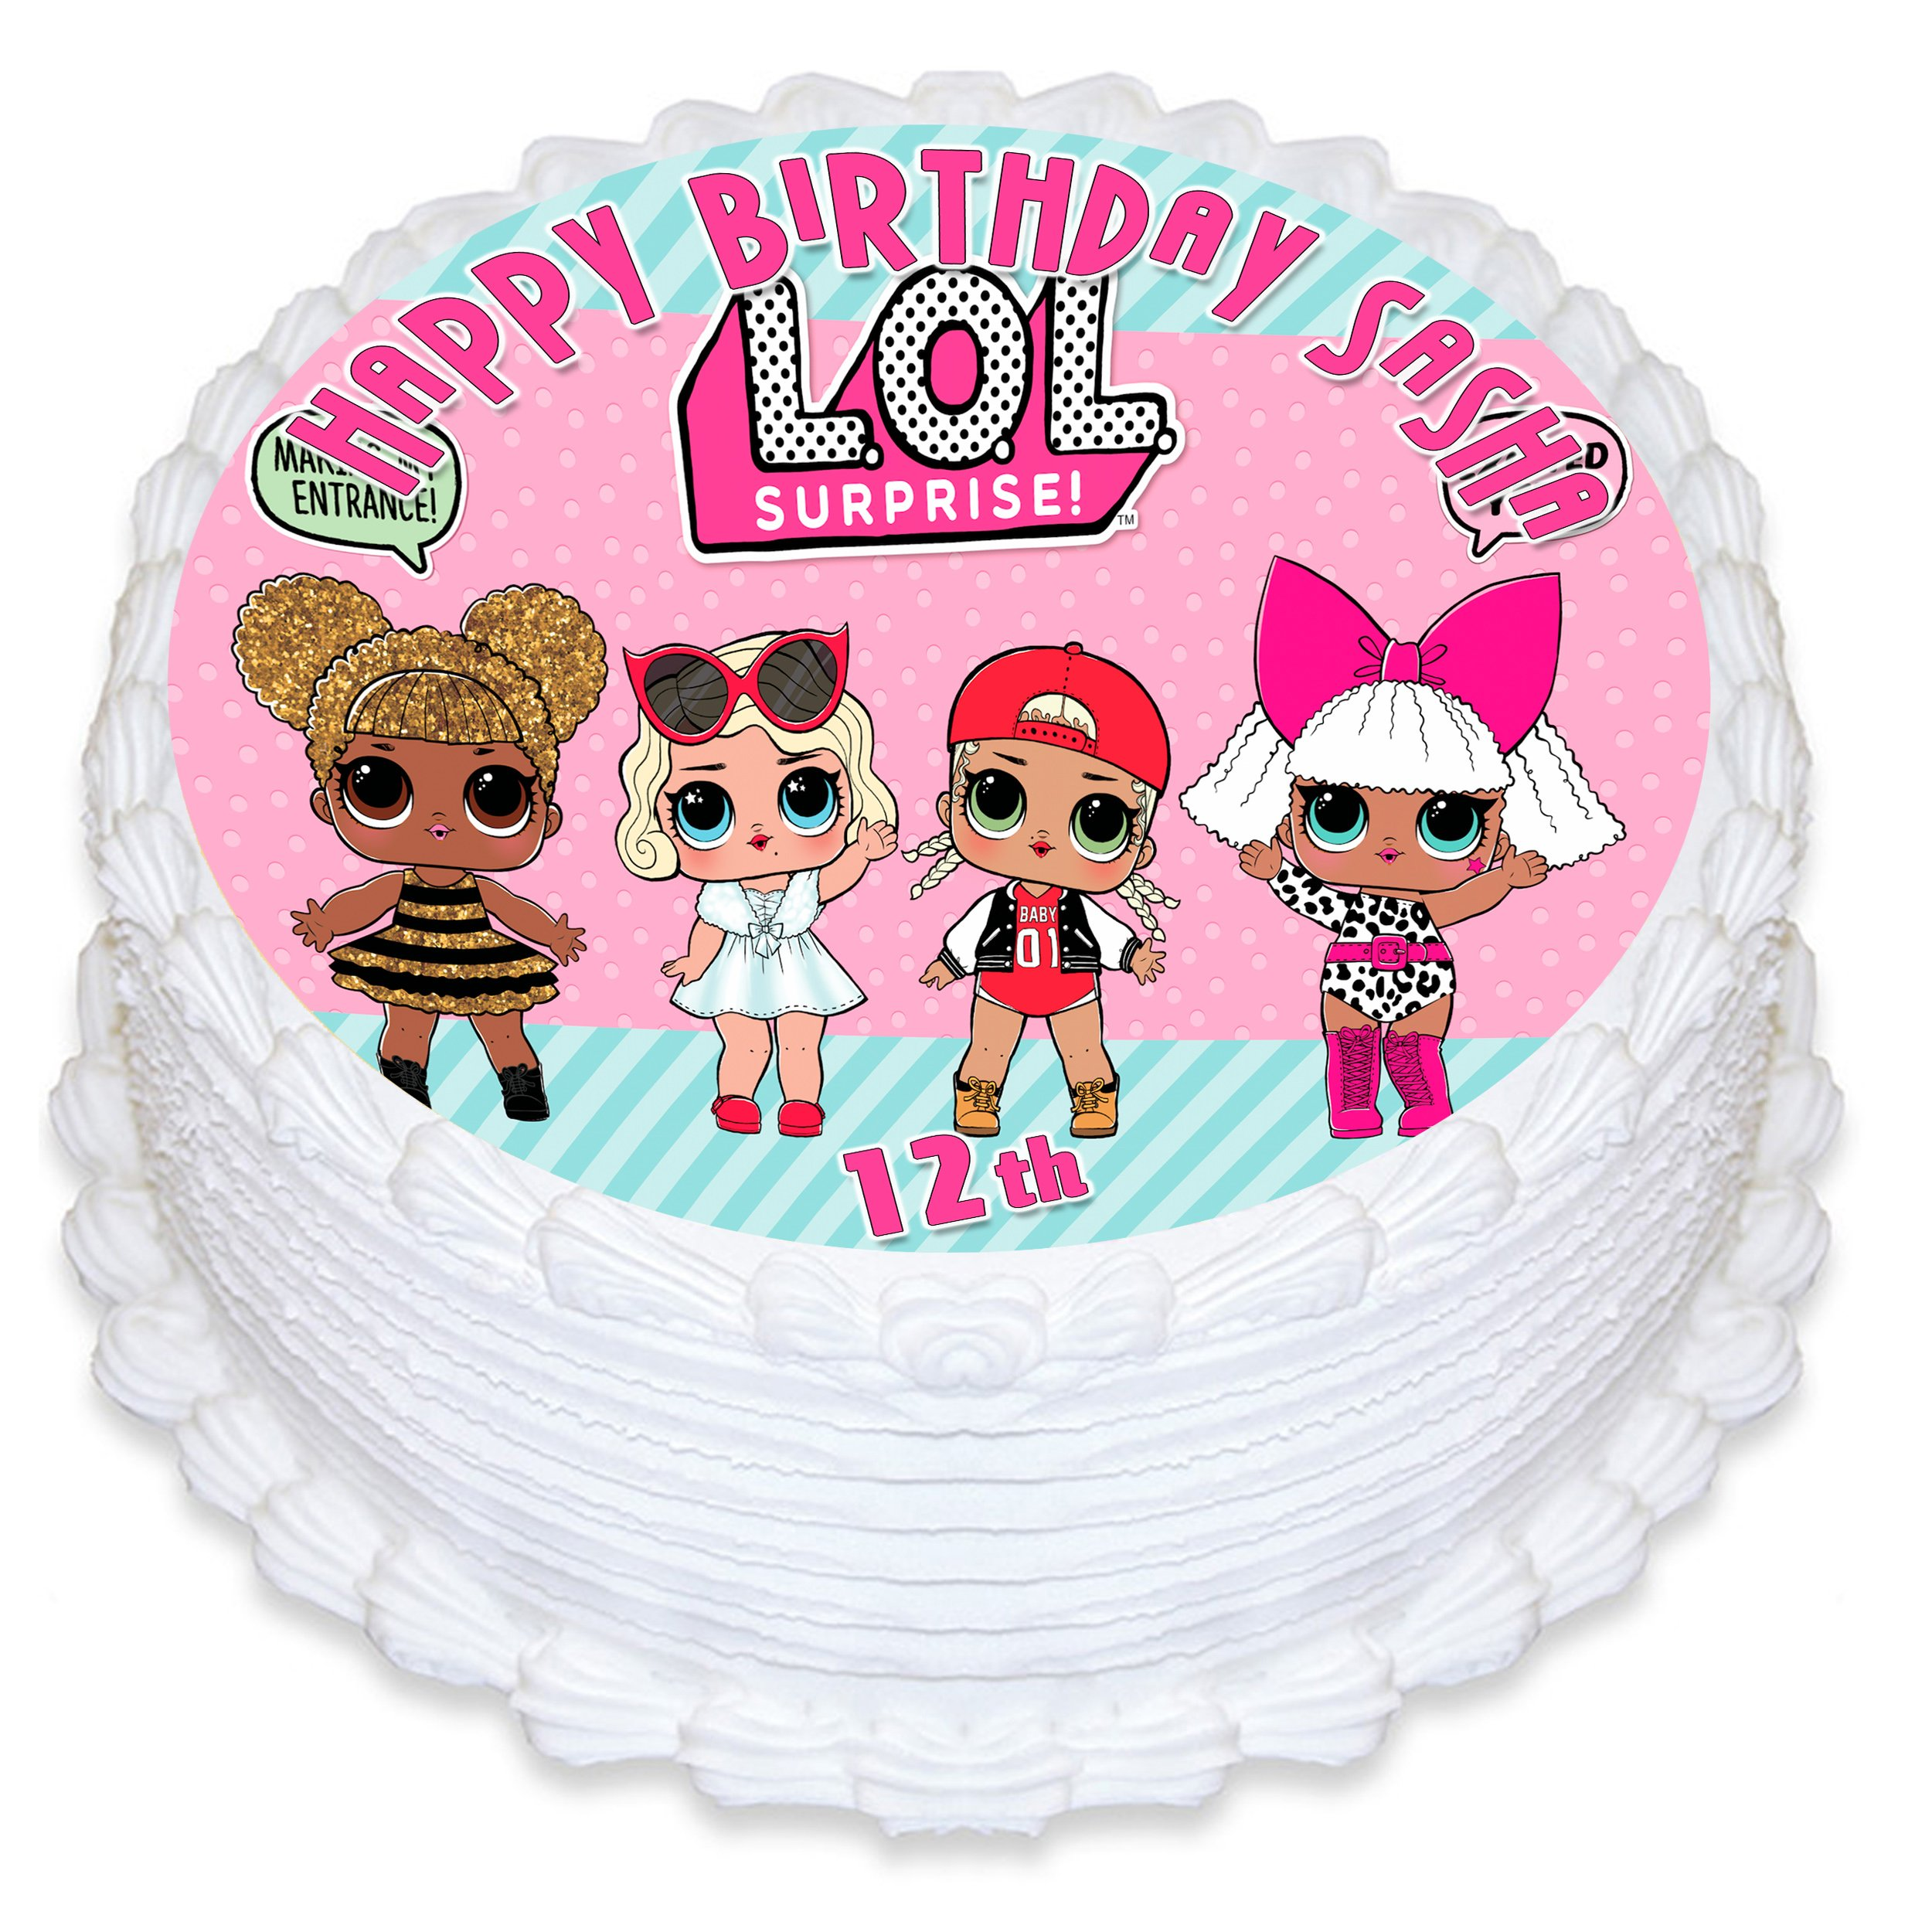 Cake Topper Personalized Birthday 8'' Round Circle Decoration Party Birthday Sugar Frosting Transfer Fondant Image ~ Best Quality Edible Image for Cake Lol Suprise Dolls